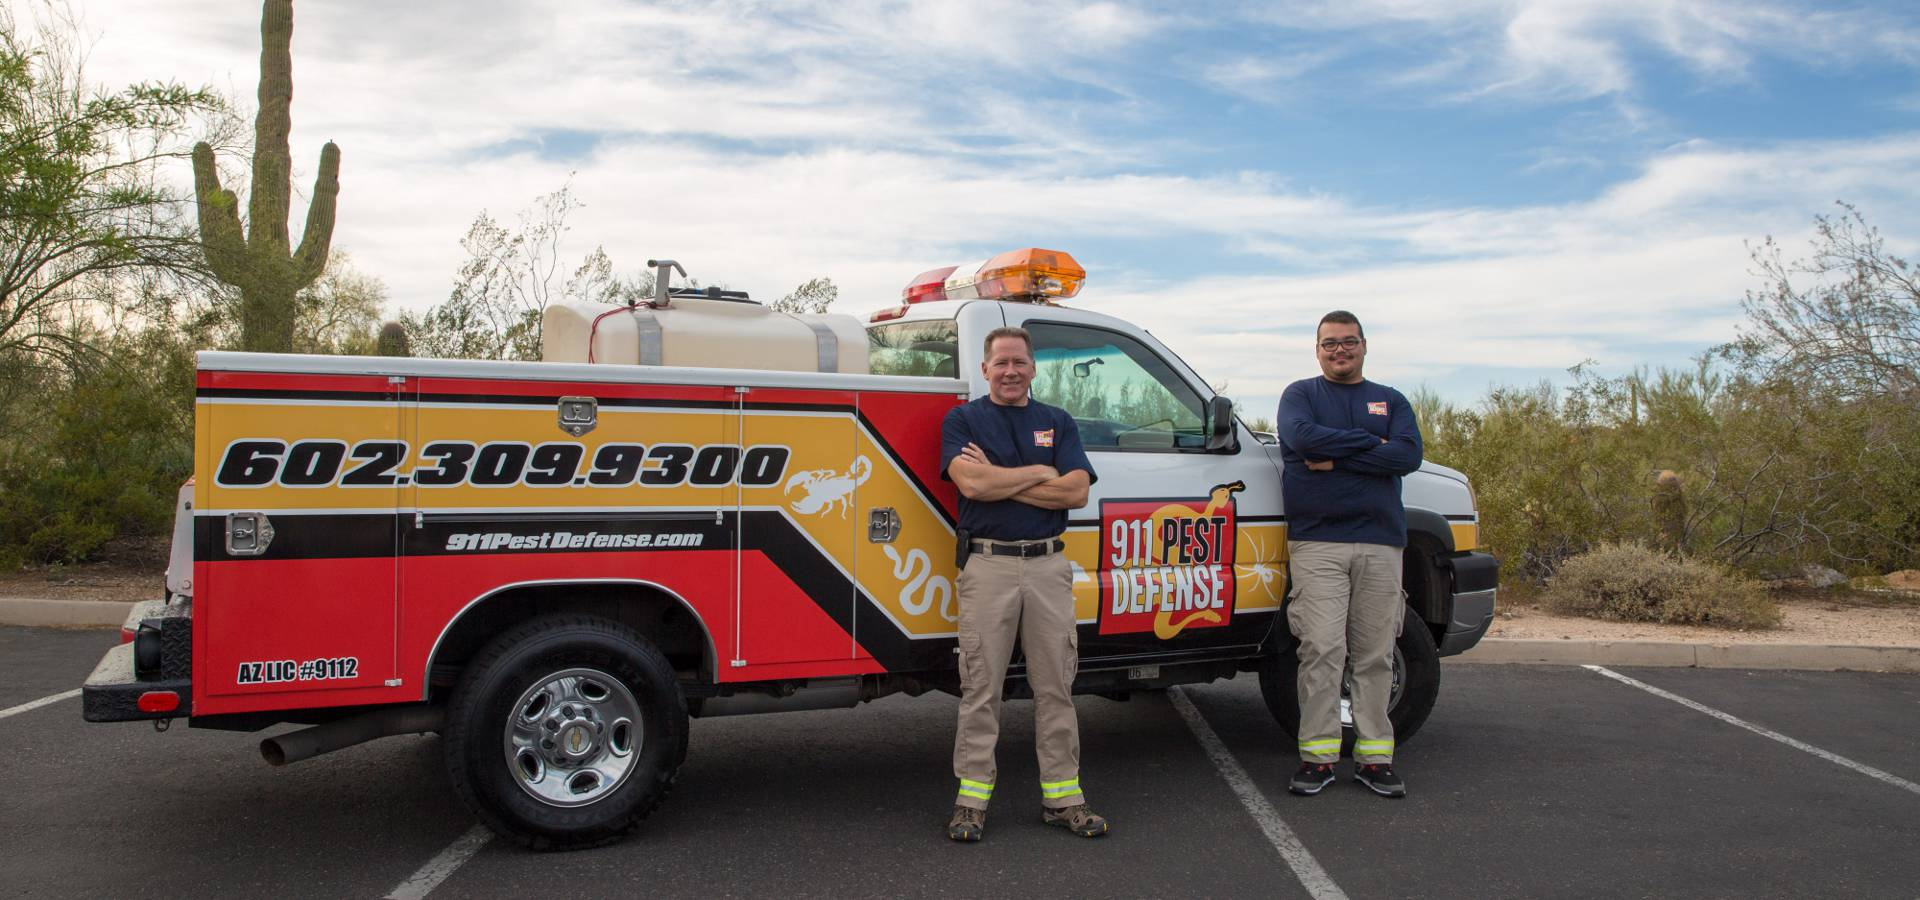 911 pest defense truck and pest control crew